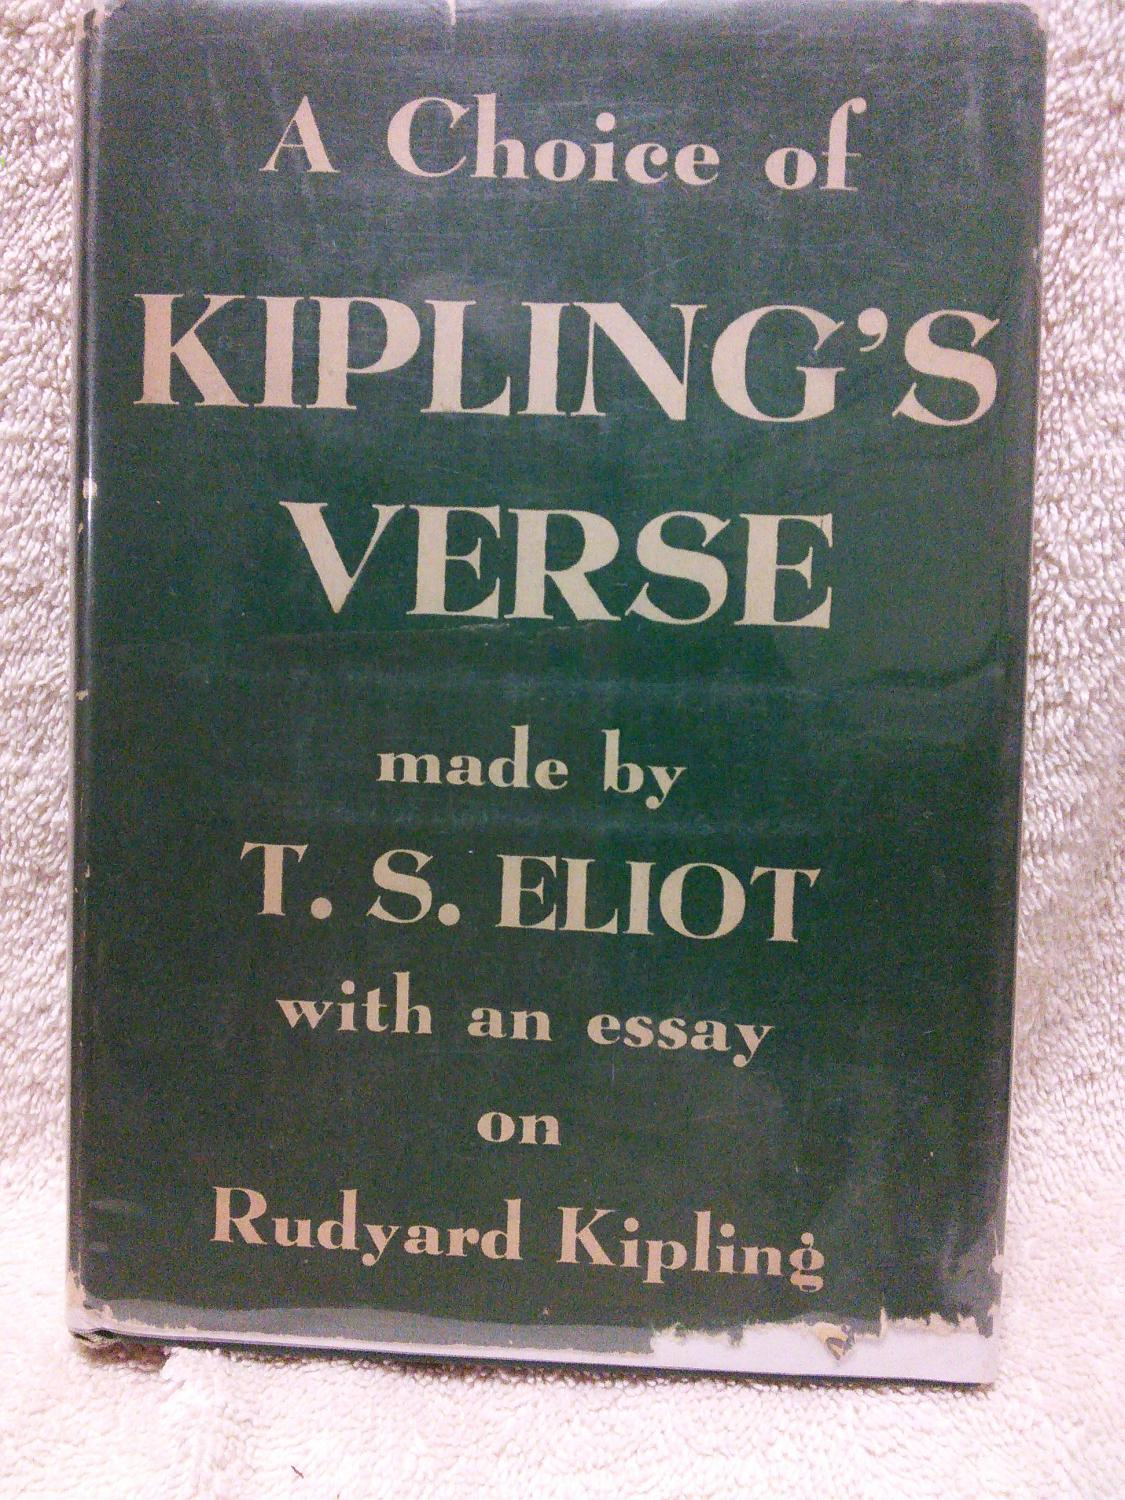 a choice of kipling s verse made by t s eliot by kipling rudyard a choice of kipling s verse made by t s eliot by kipling rudyard